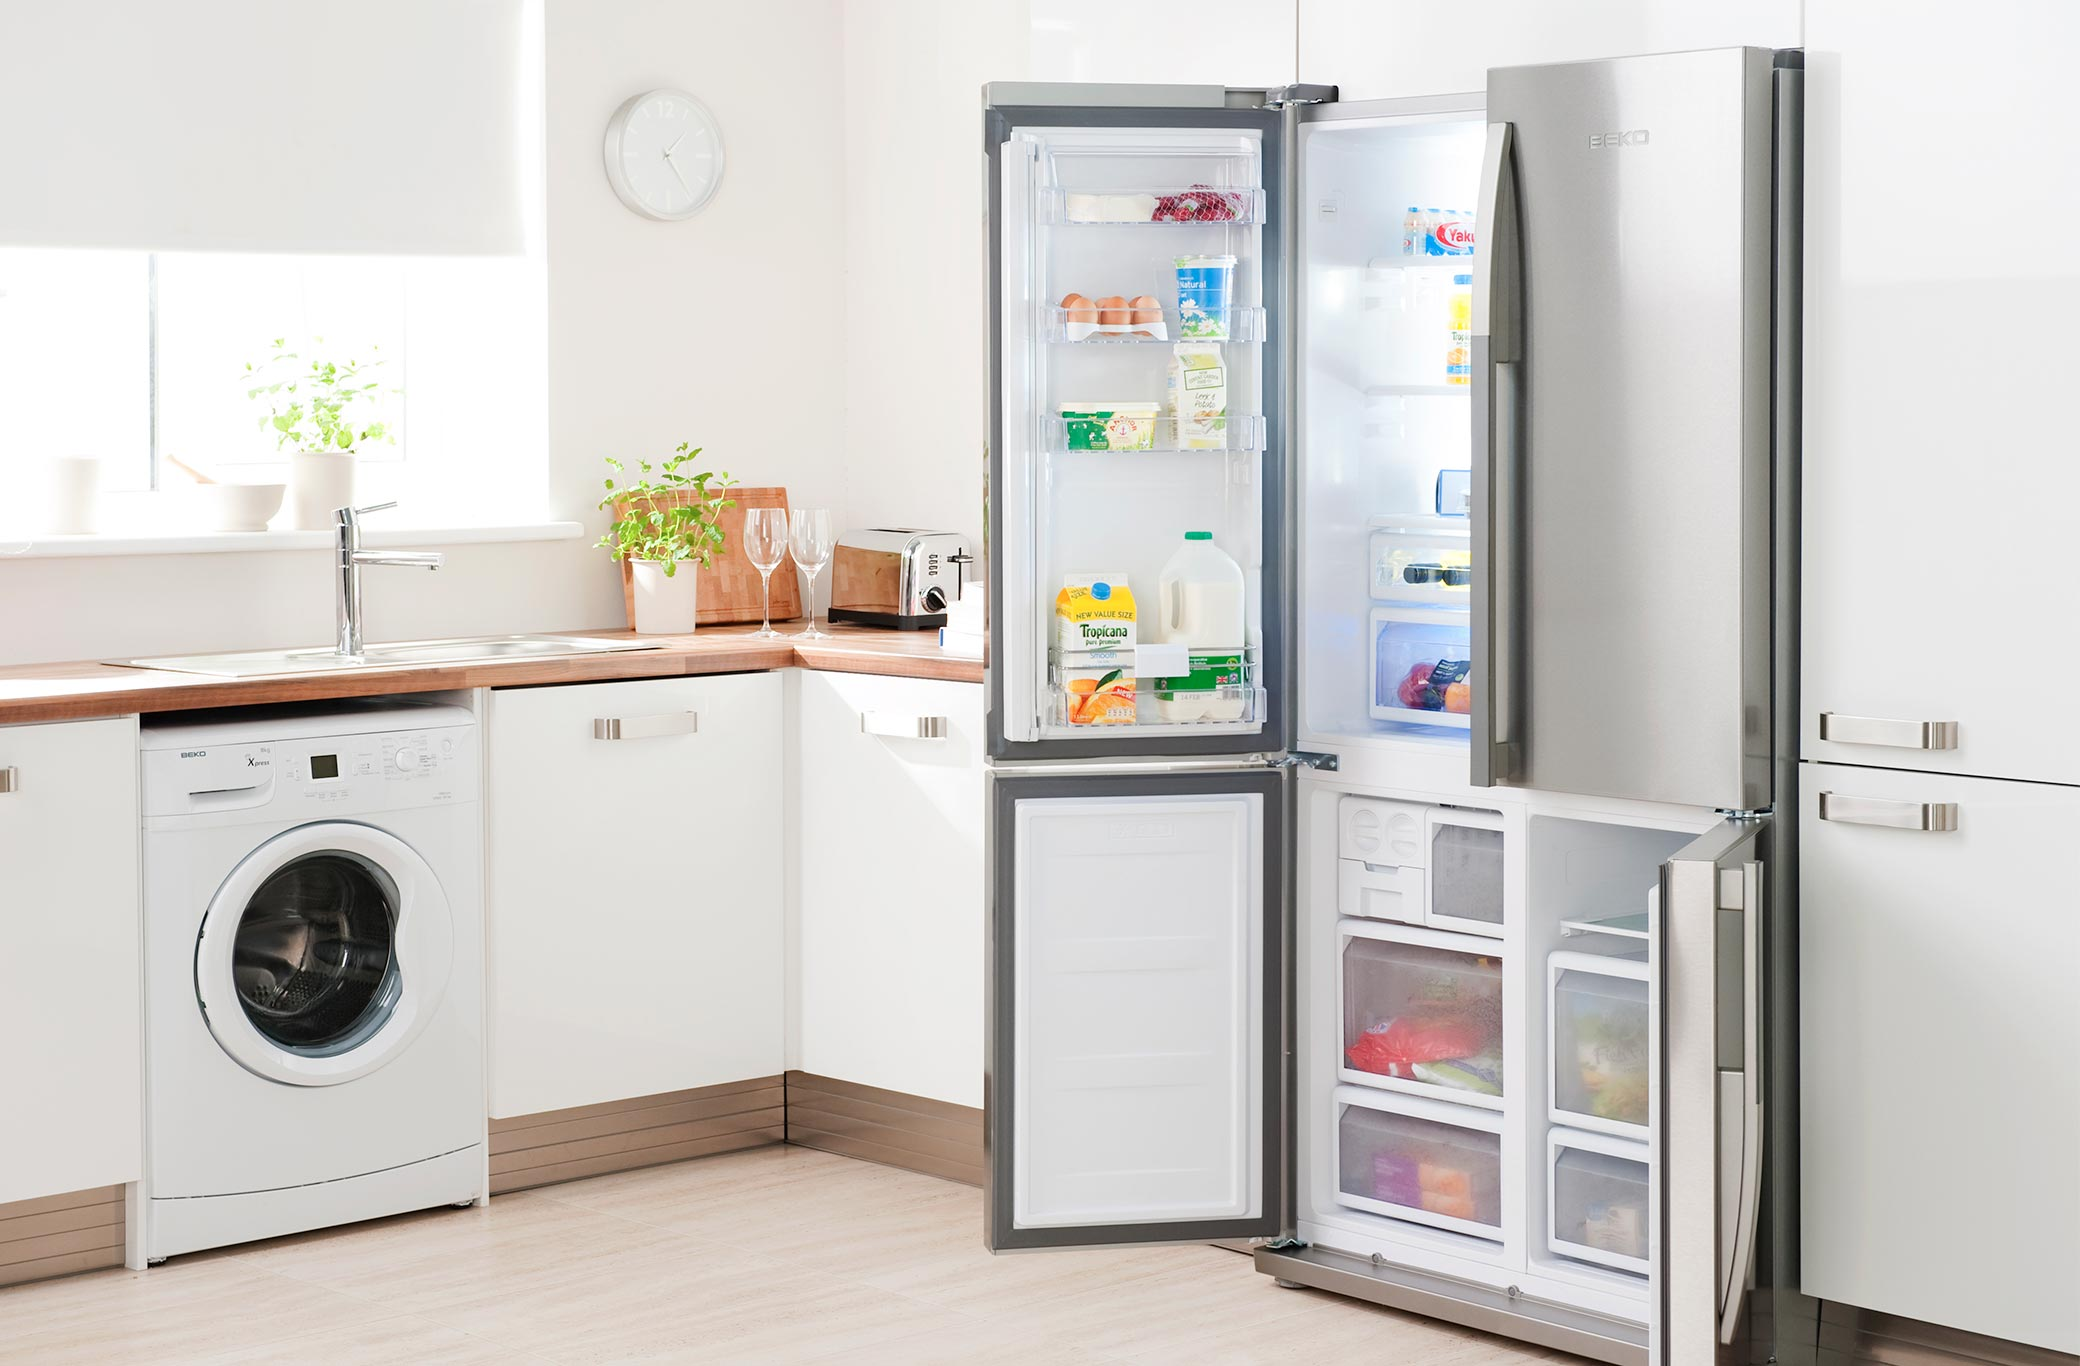 Cool storage with the Beko built in range, available at ao.com